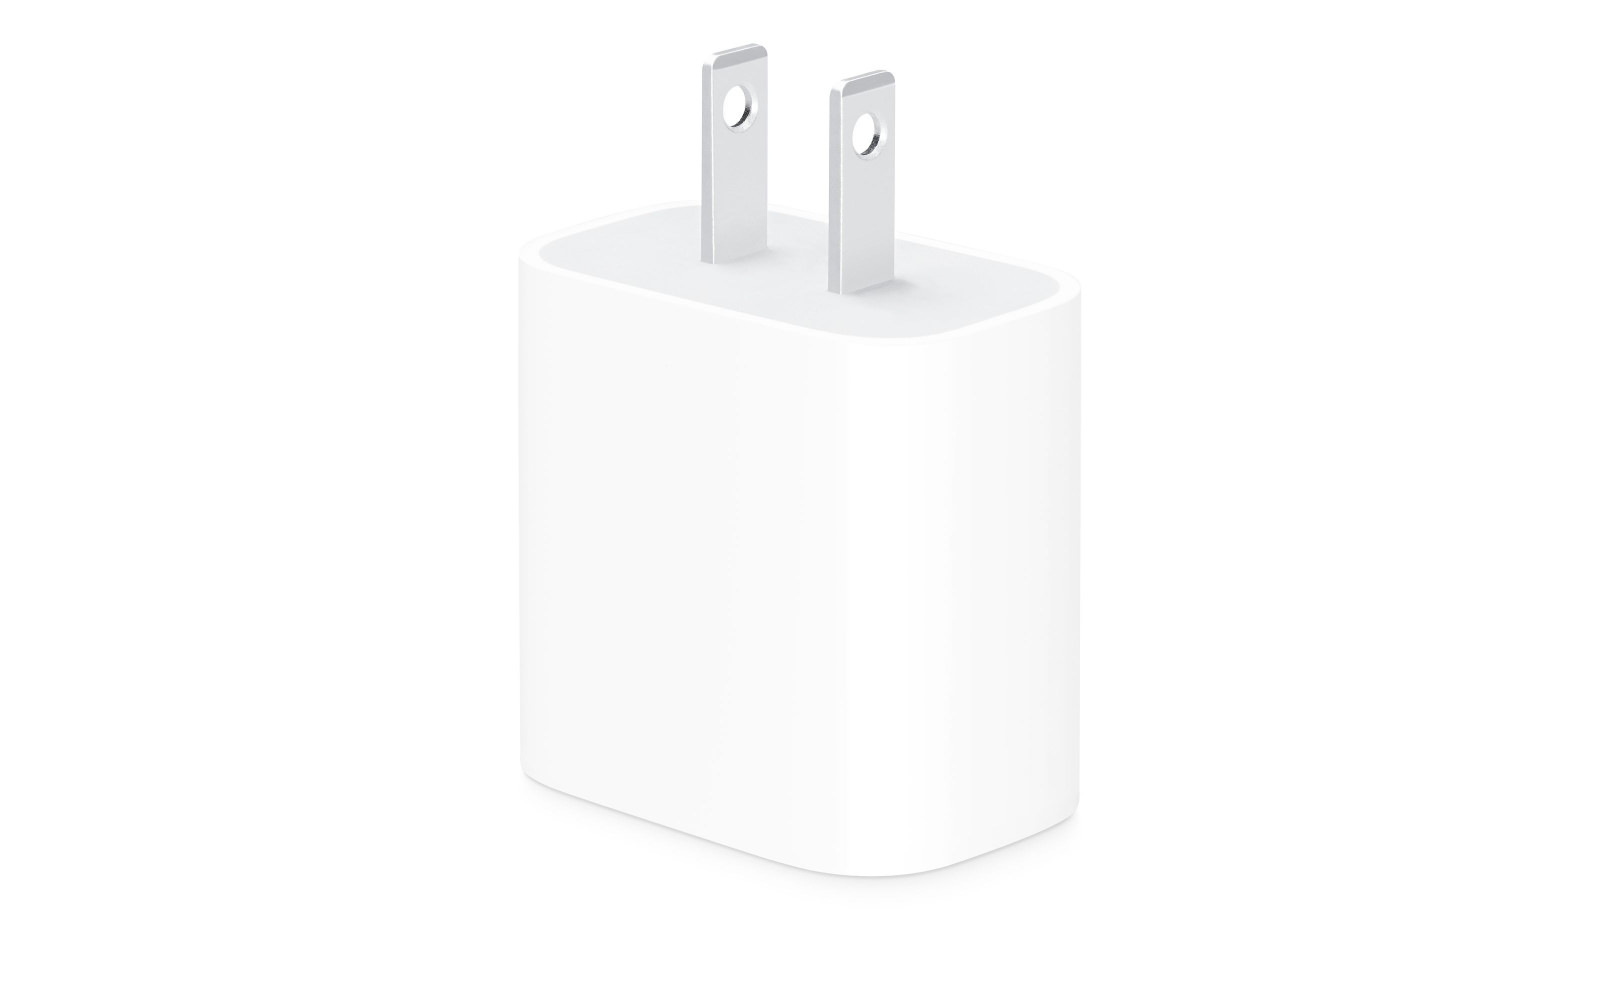 Apple-18W-adapter.jpg